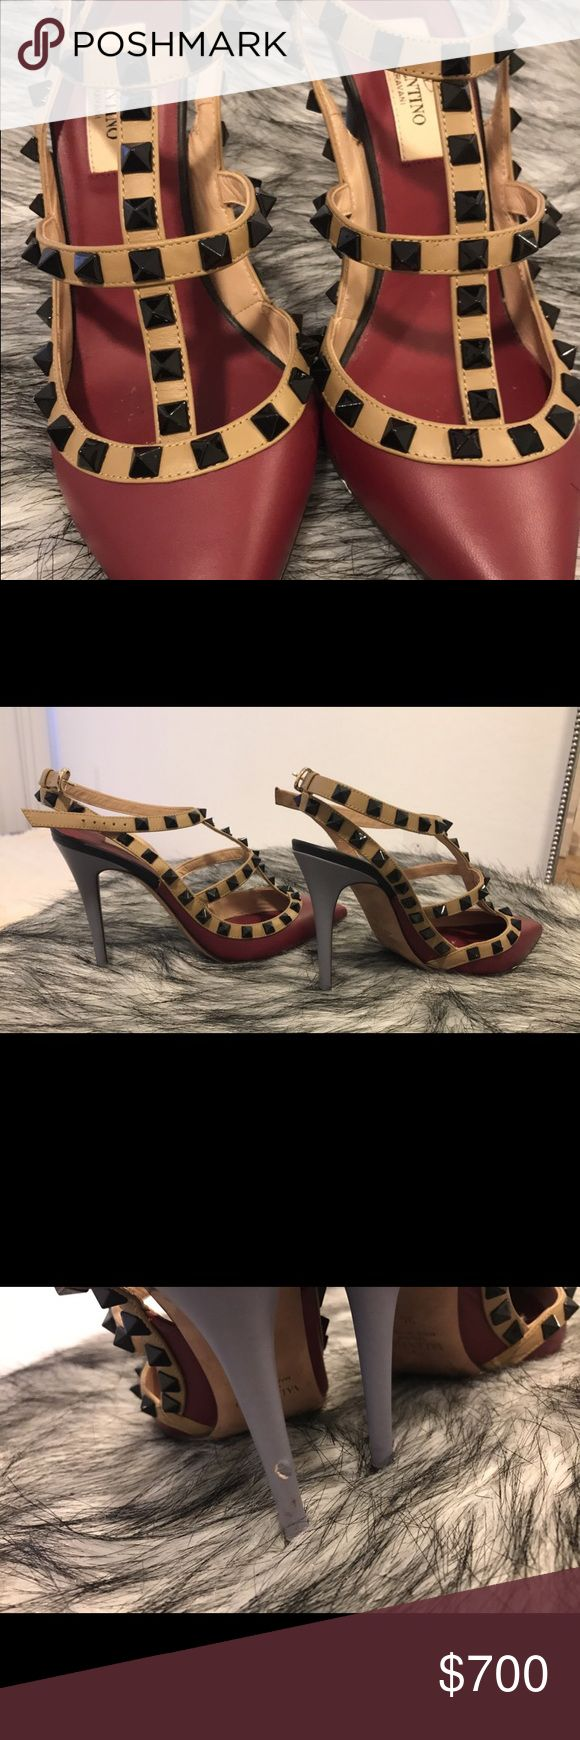 Valentino Rockstud Heels Multi colored Valentino Rockstud! Overall amazing condition. Worn a few times. Still too small for me! Only a small scuff on one of the heels as shown in the picture (very unnoticeable). 100% Authentic ! Valentino Shoes Heels